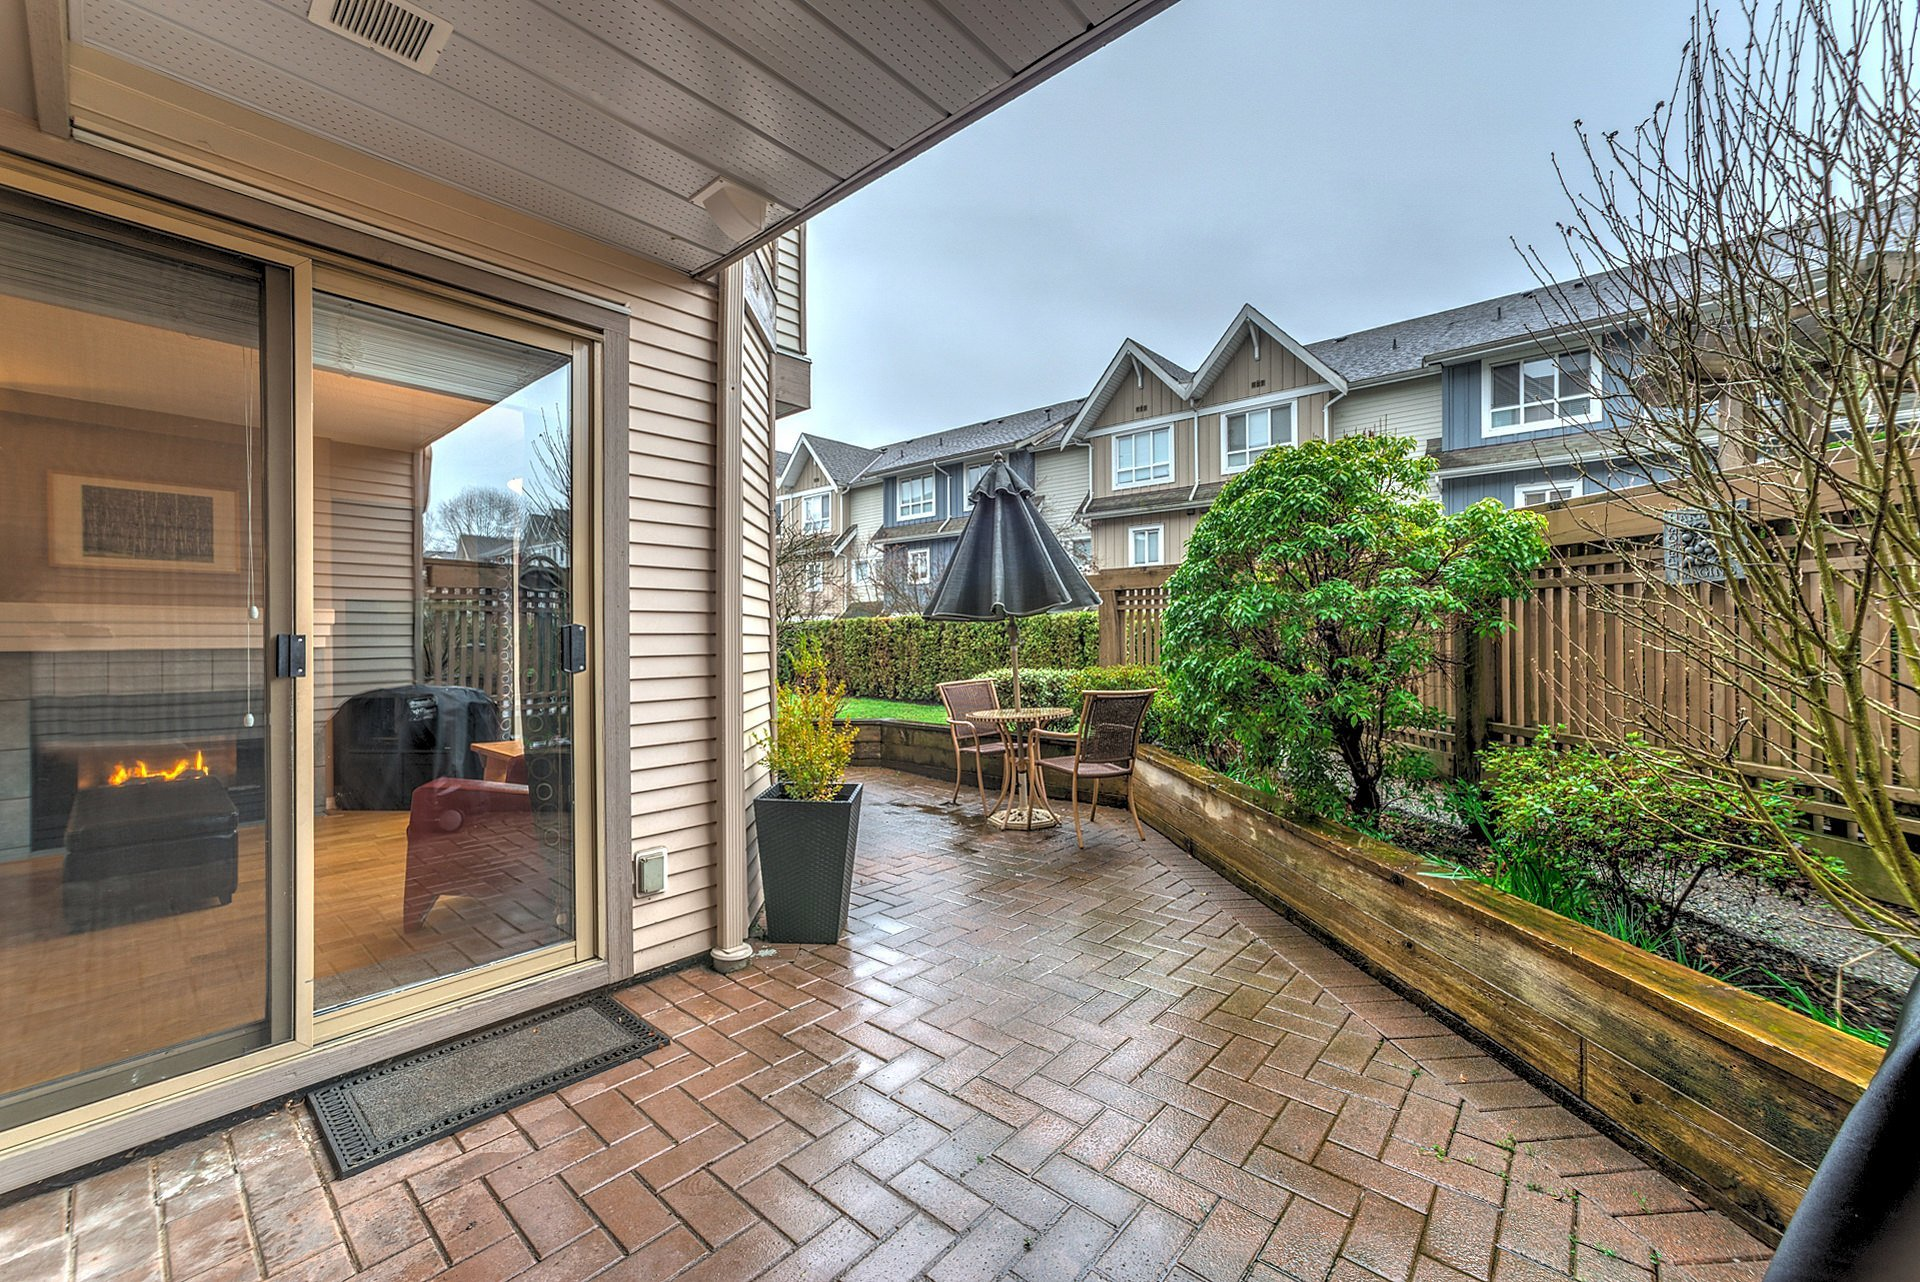 31207_19 at 105 - 1650 Grant Avenue, Glenwood PQ, Port Coquitlam